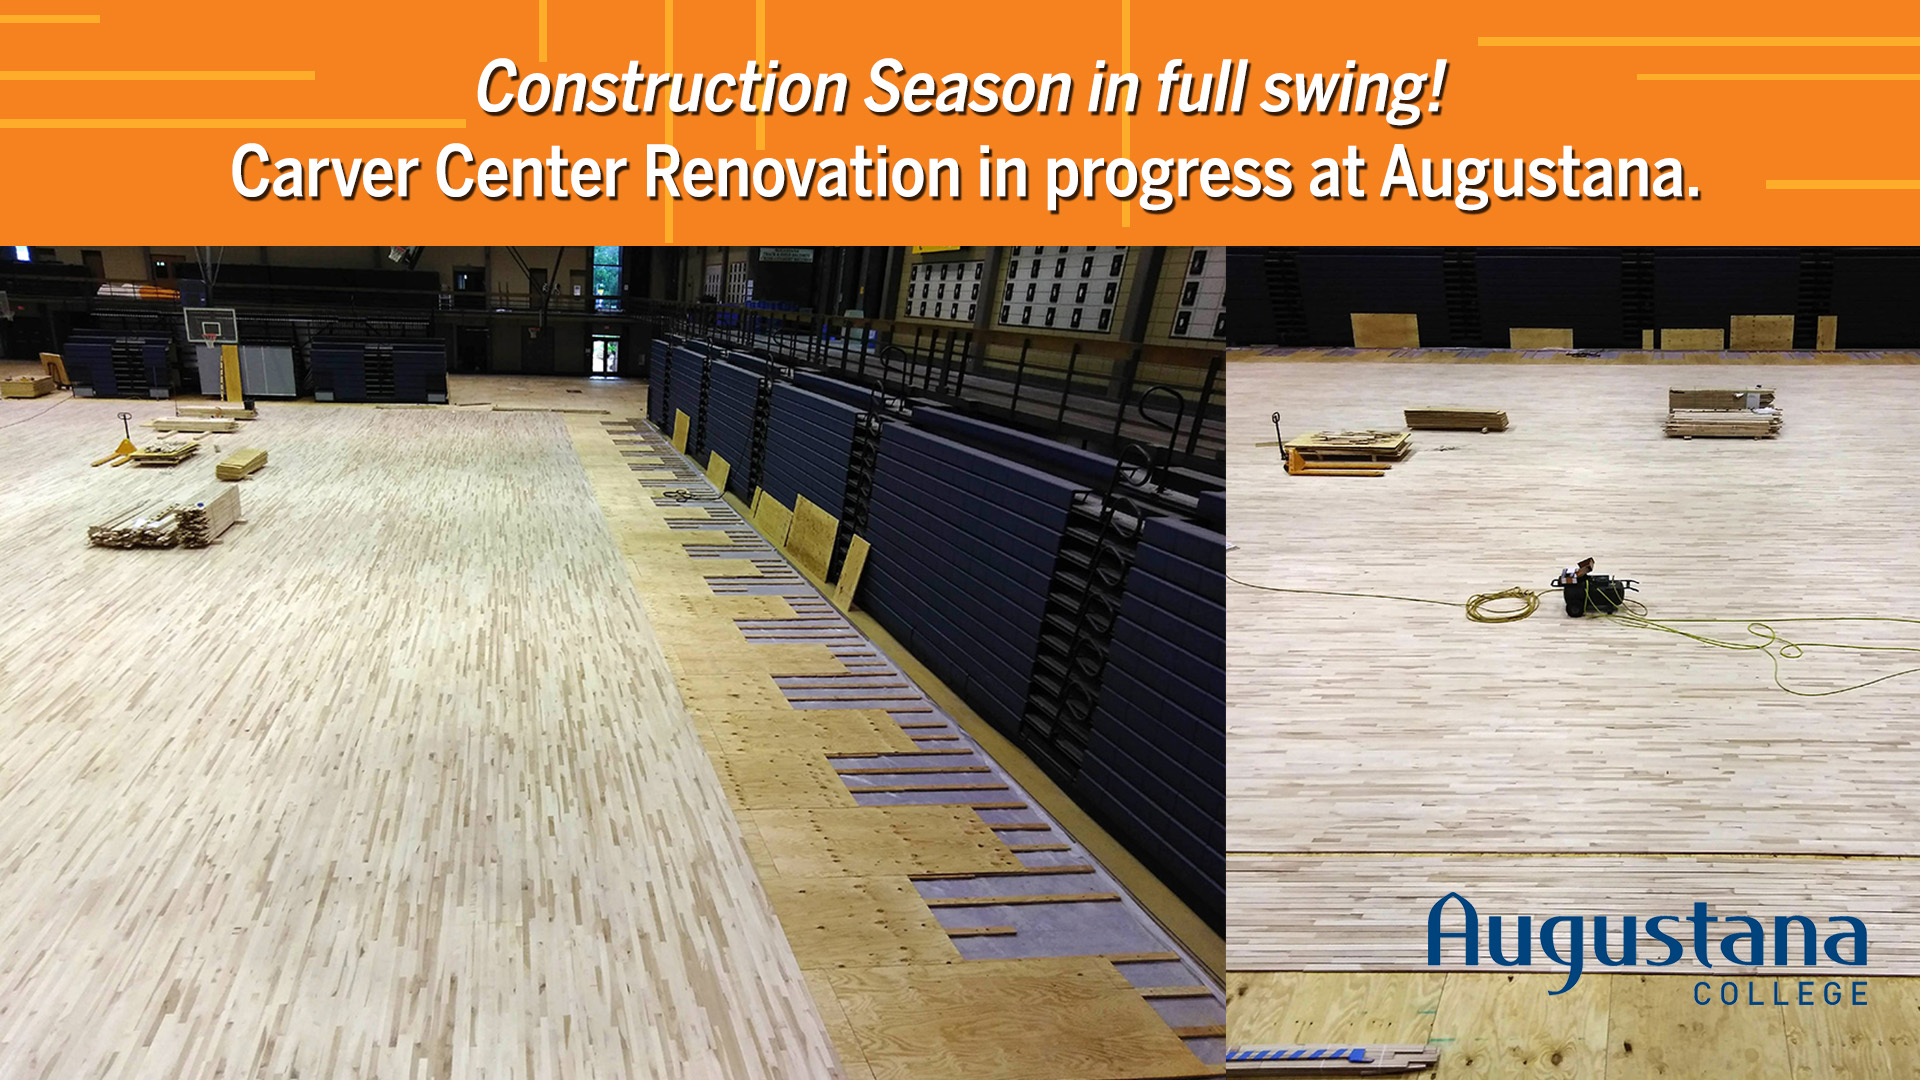 Augustana-College_Carver_Construction